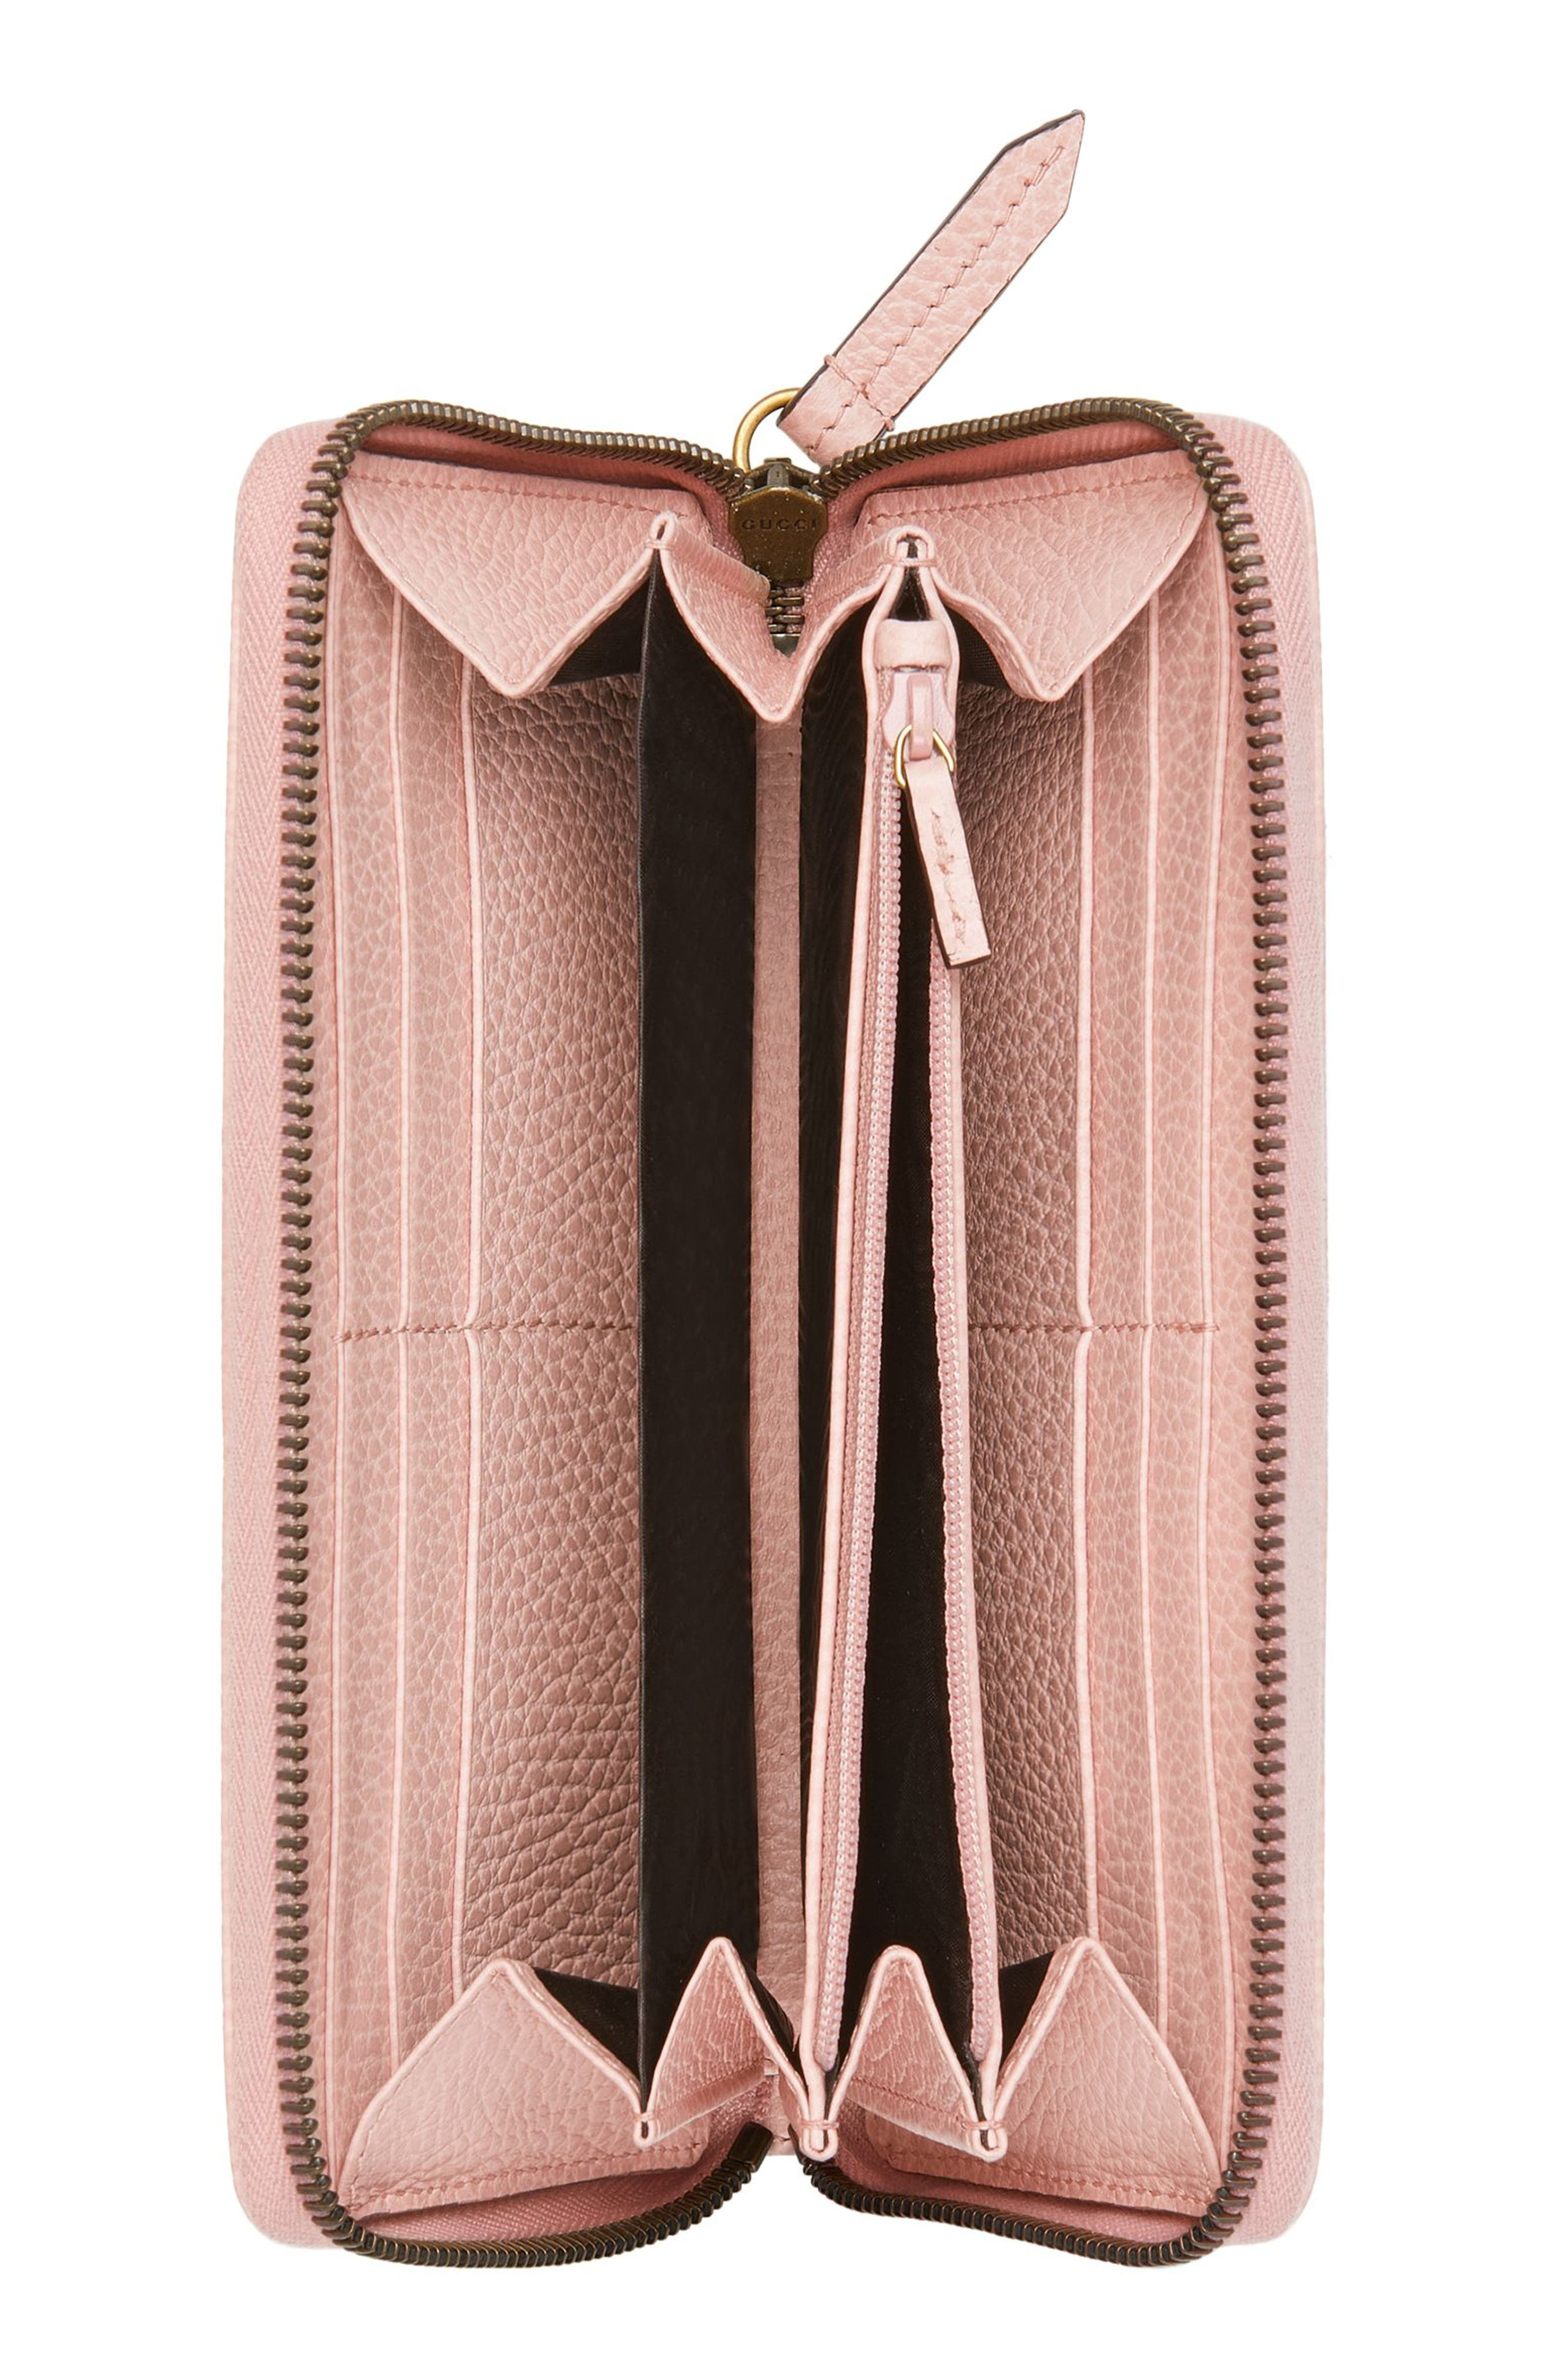 GUCCI, Farfalla Zip Around Leather Wallet, Alternate thumbnail 2, color, PERFECT PINK/ CRYSTAL